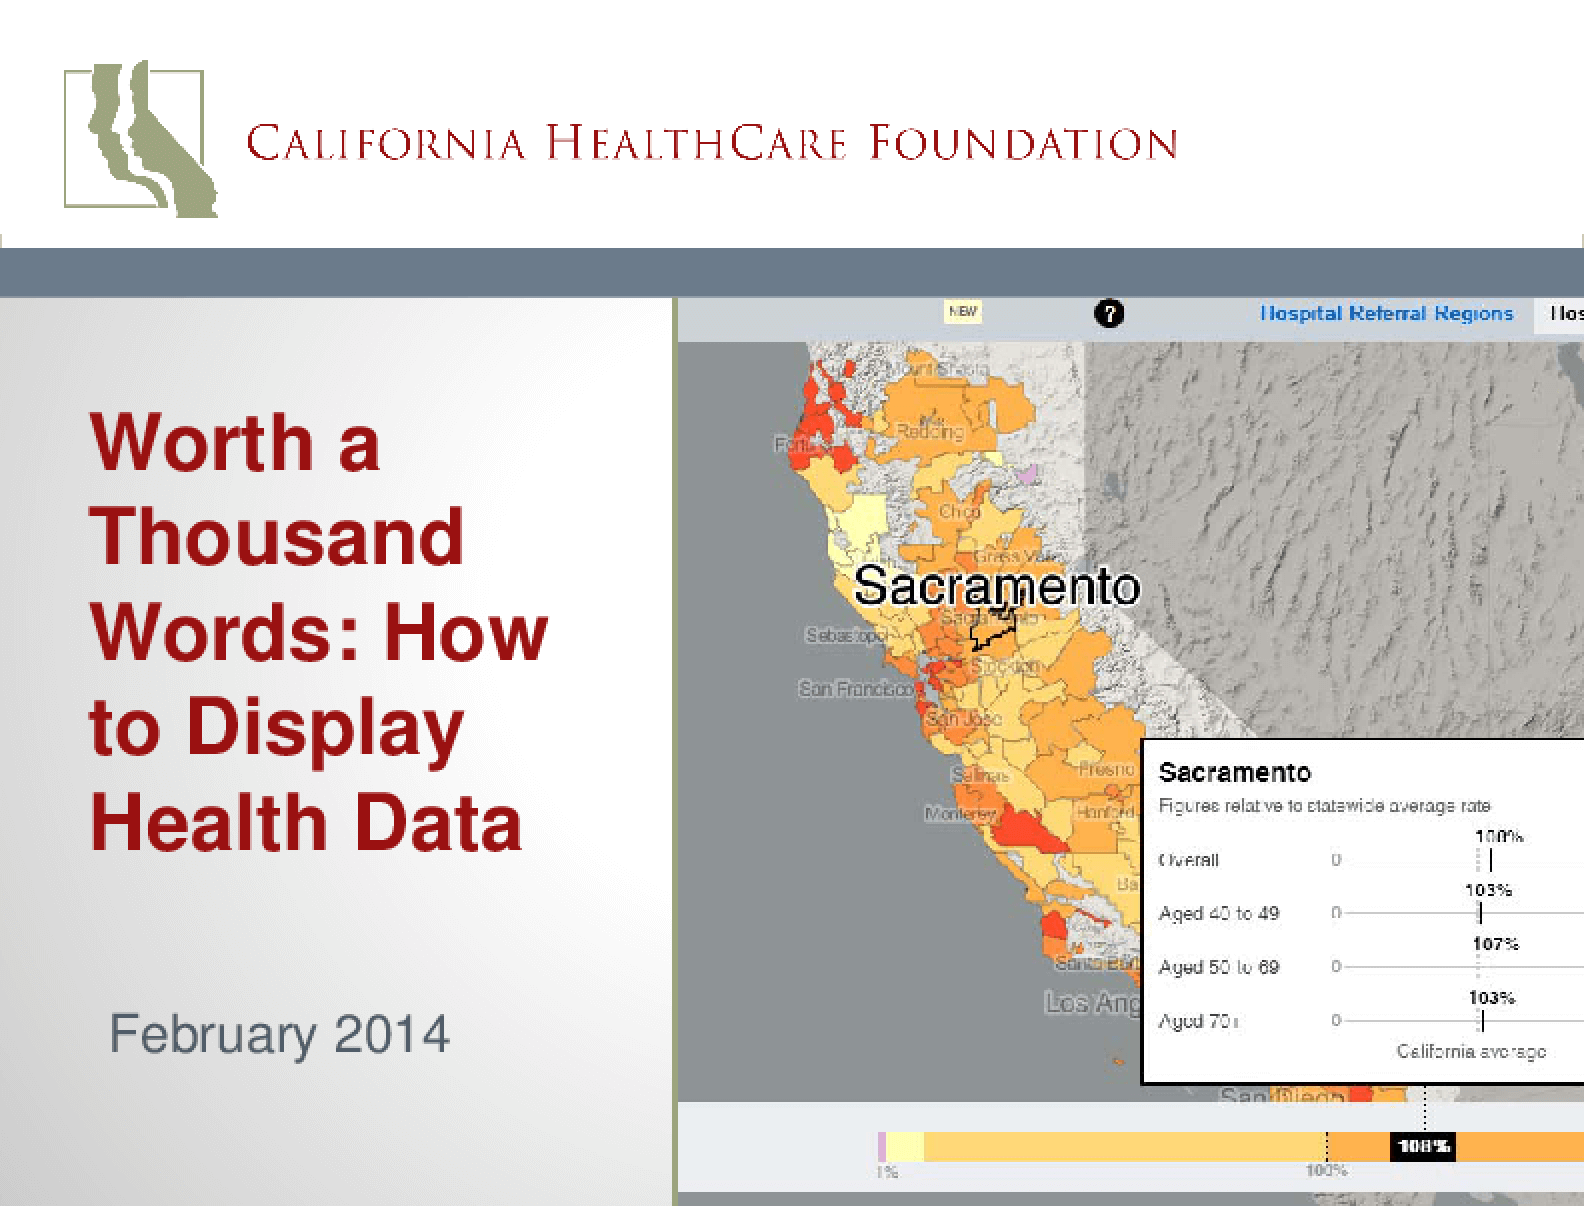 Worth a Thousand Words: How to Display Health Data